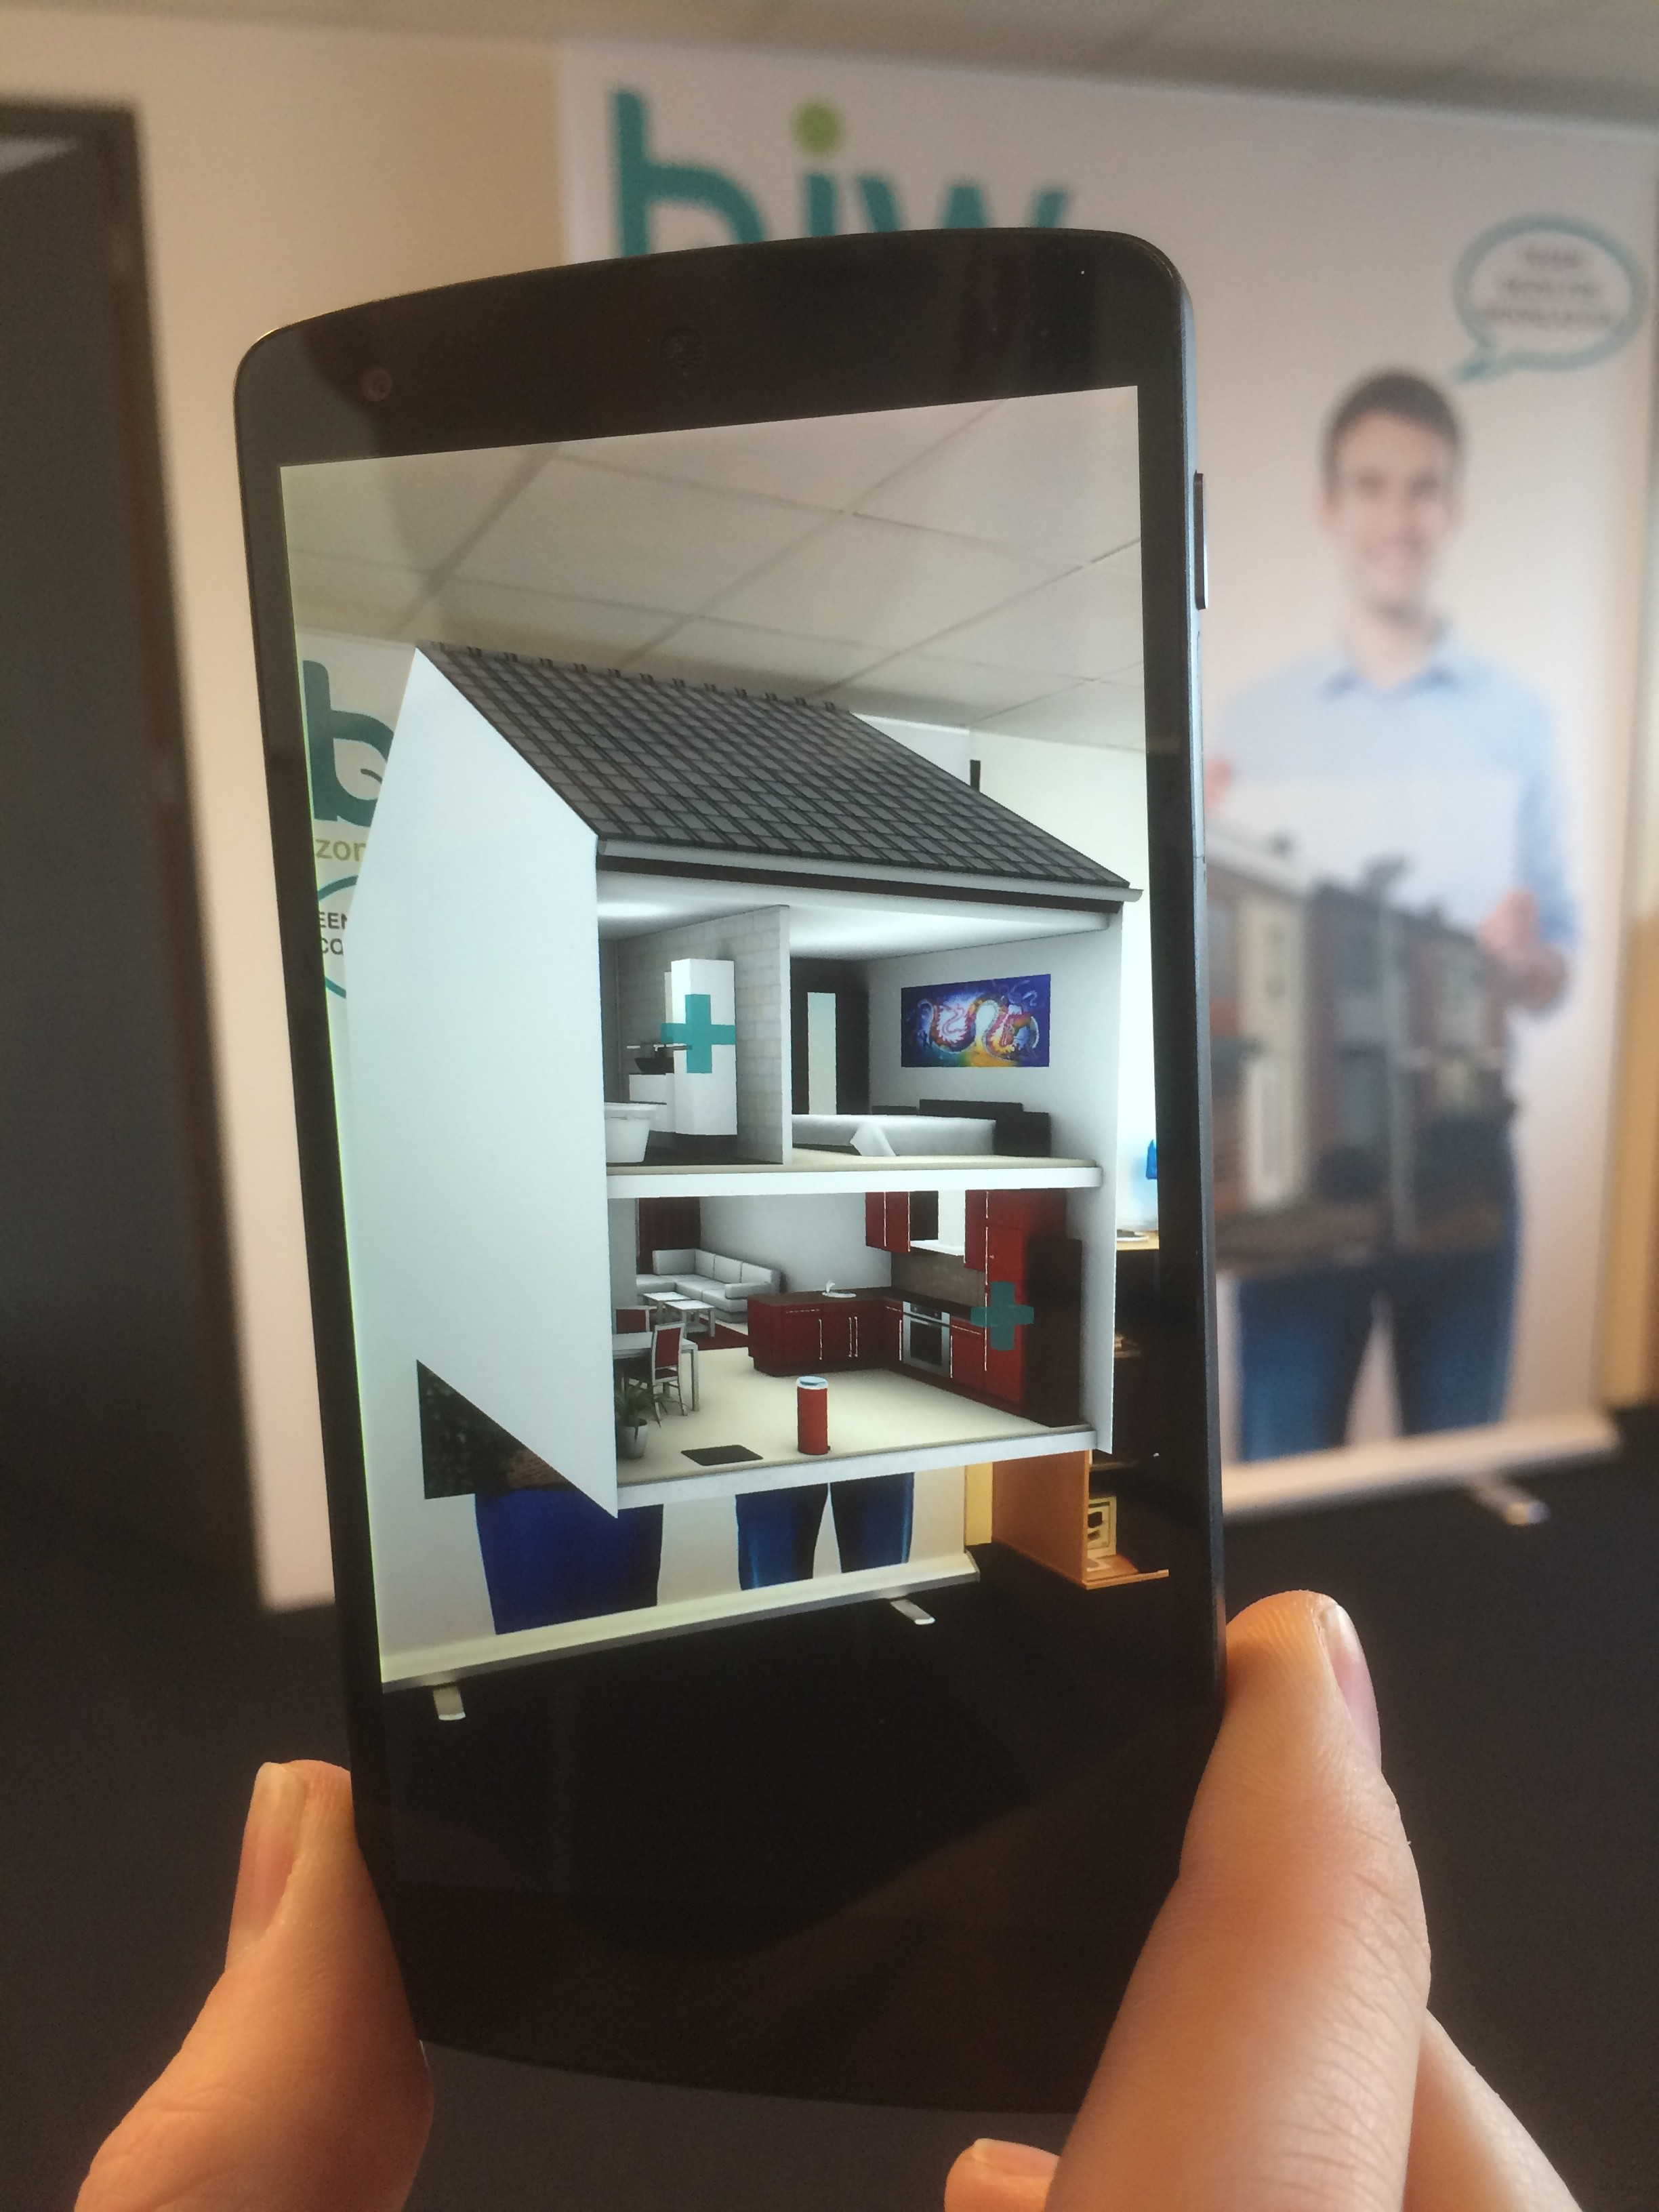 Augemented reality in de bouw (Recreate en BJW Wonen)